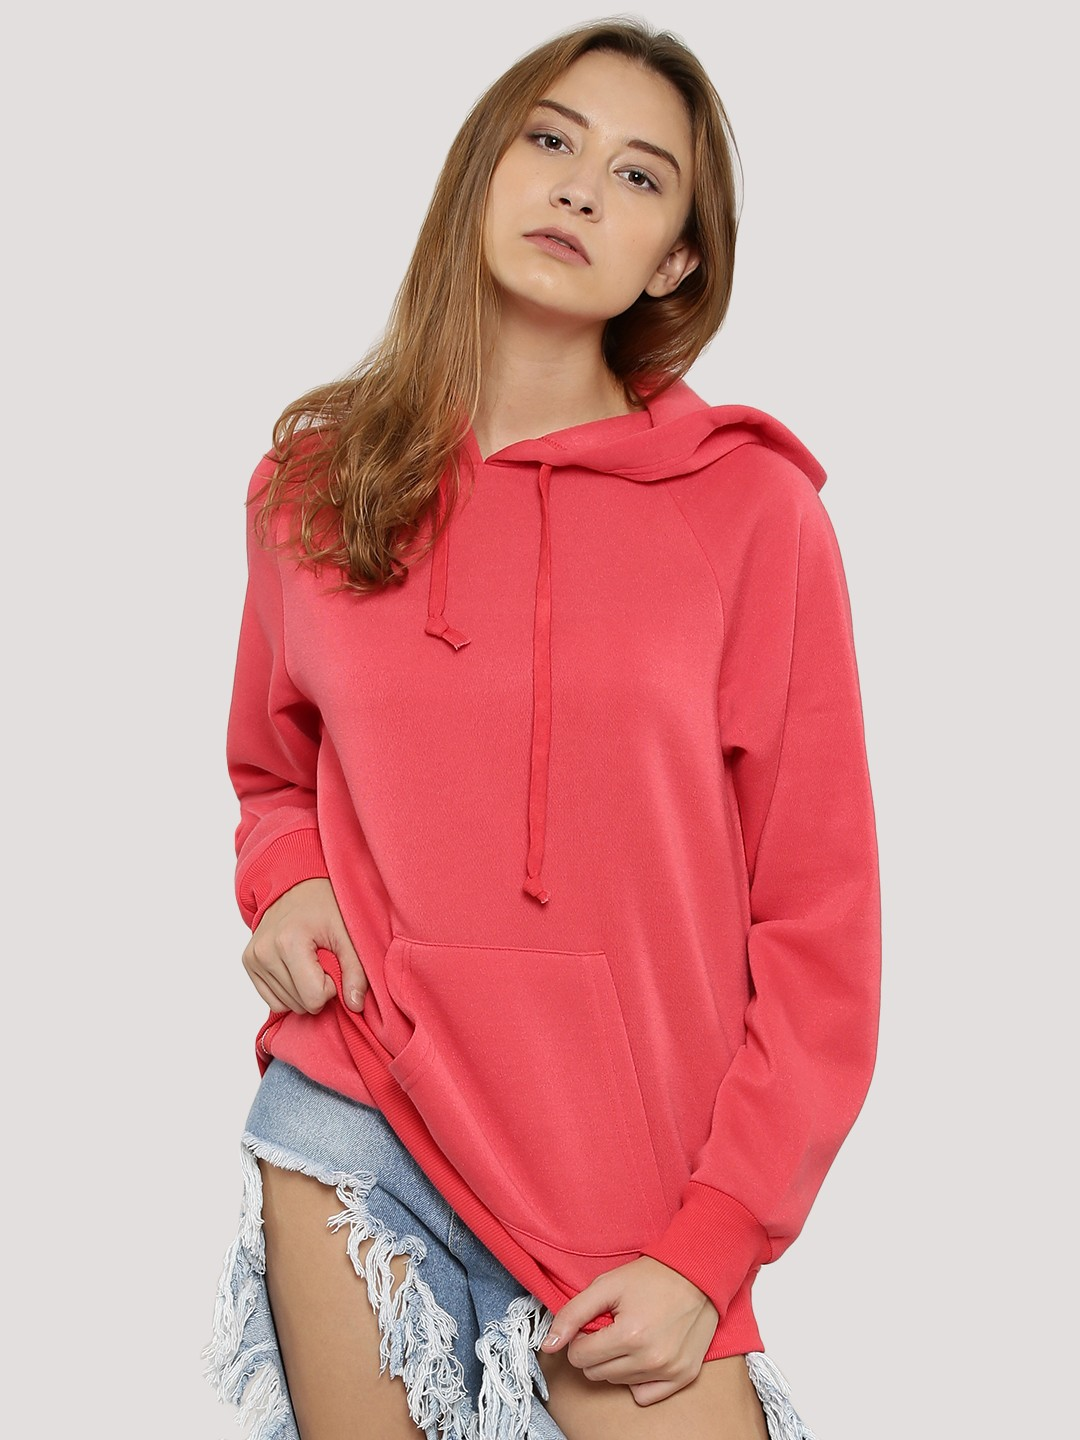 Buy the latest Clothing For Women cheap prices, and check out our daily updated new arrival Women's Clothing at sofltappreciate.tk